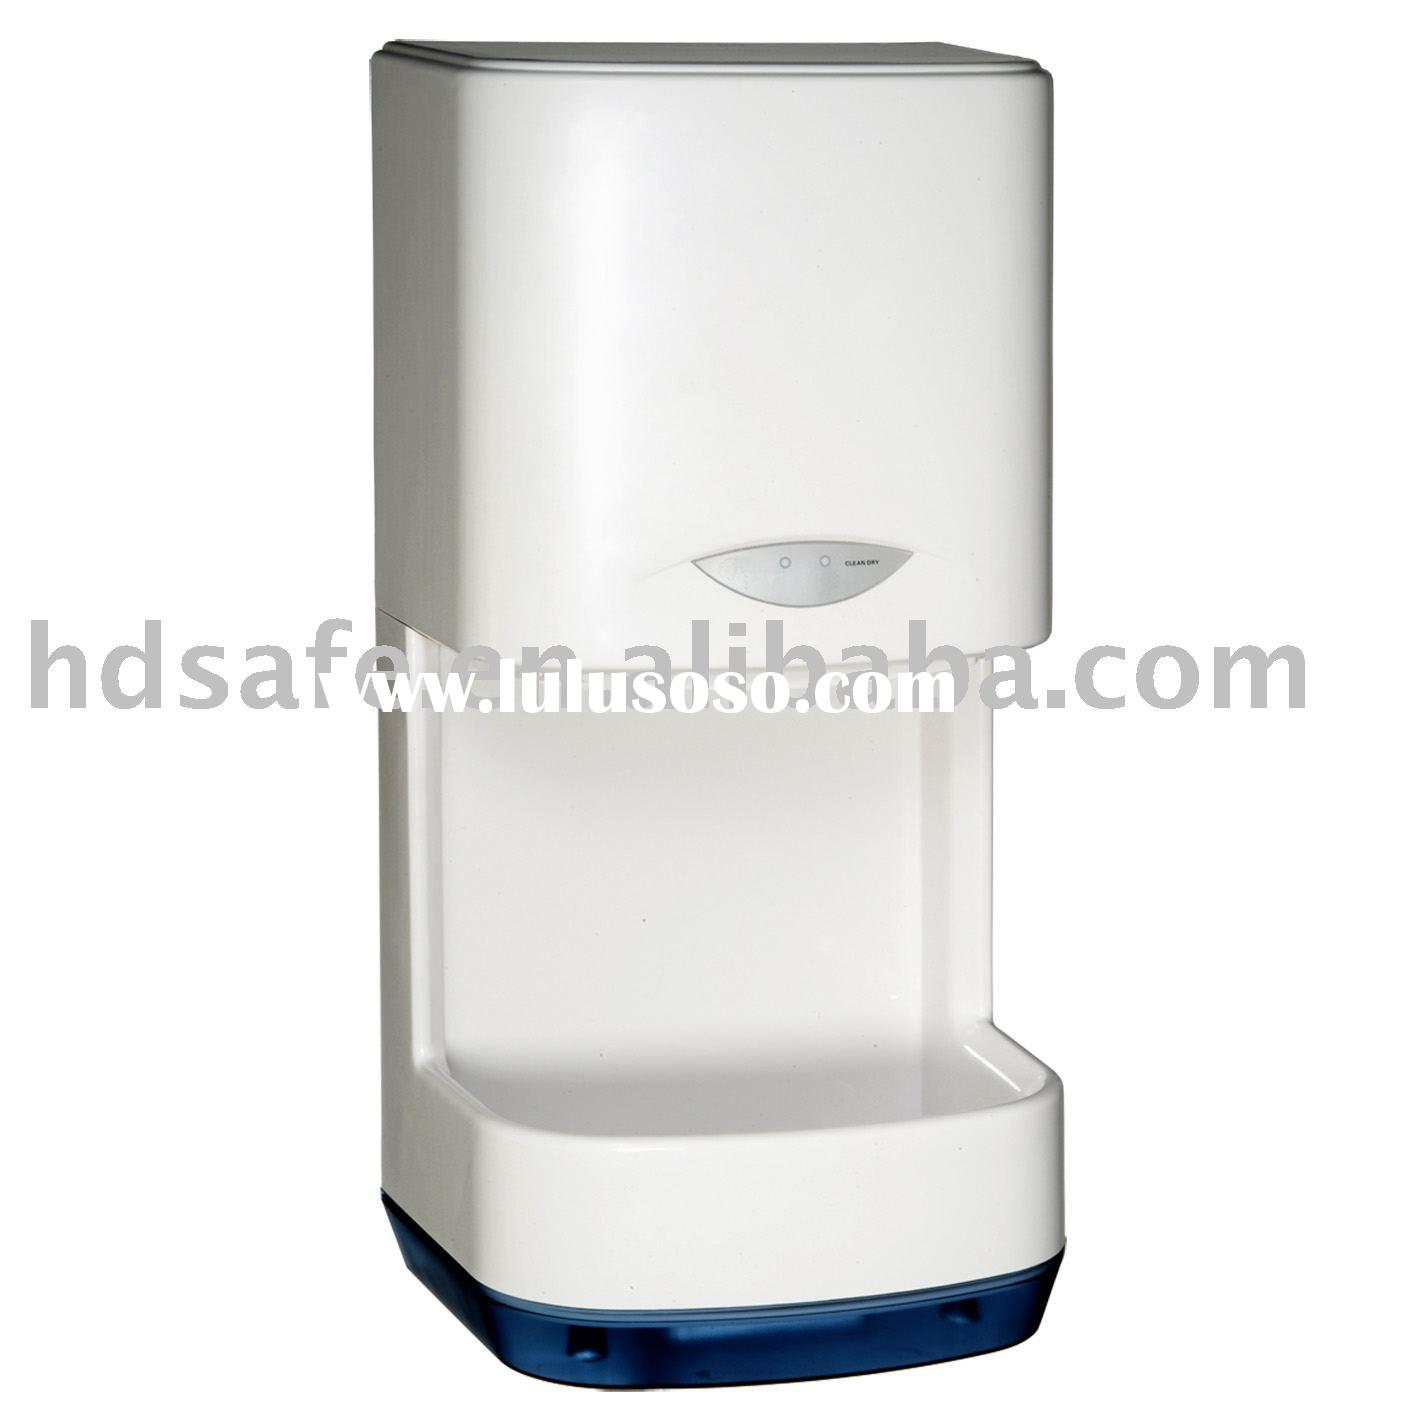 Automatic Hand Dryer (hand drier, dryer, electrical hand dryer, sensor hand dryer, household applian